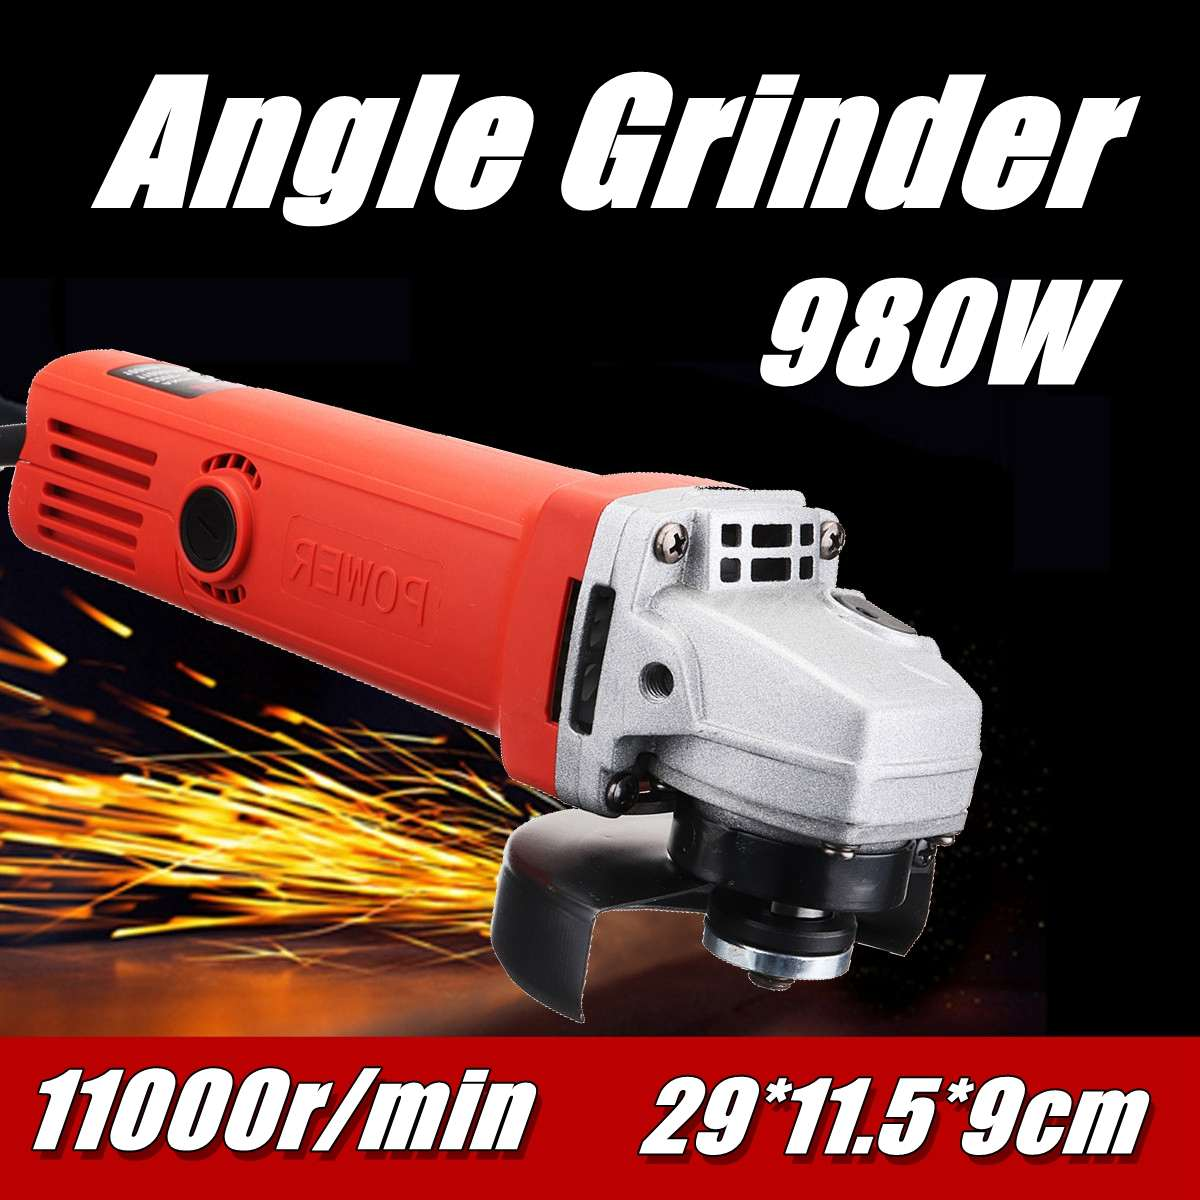 220V/50Hz 980W 11000r/min Protable Electric Angle Grinder Muti Function Cutting Polishing Tools Hand Grinding